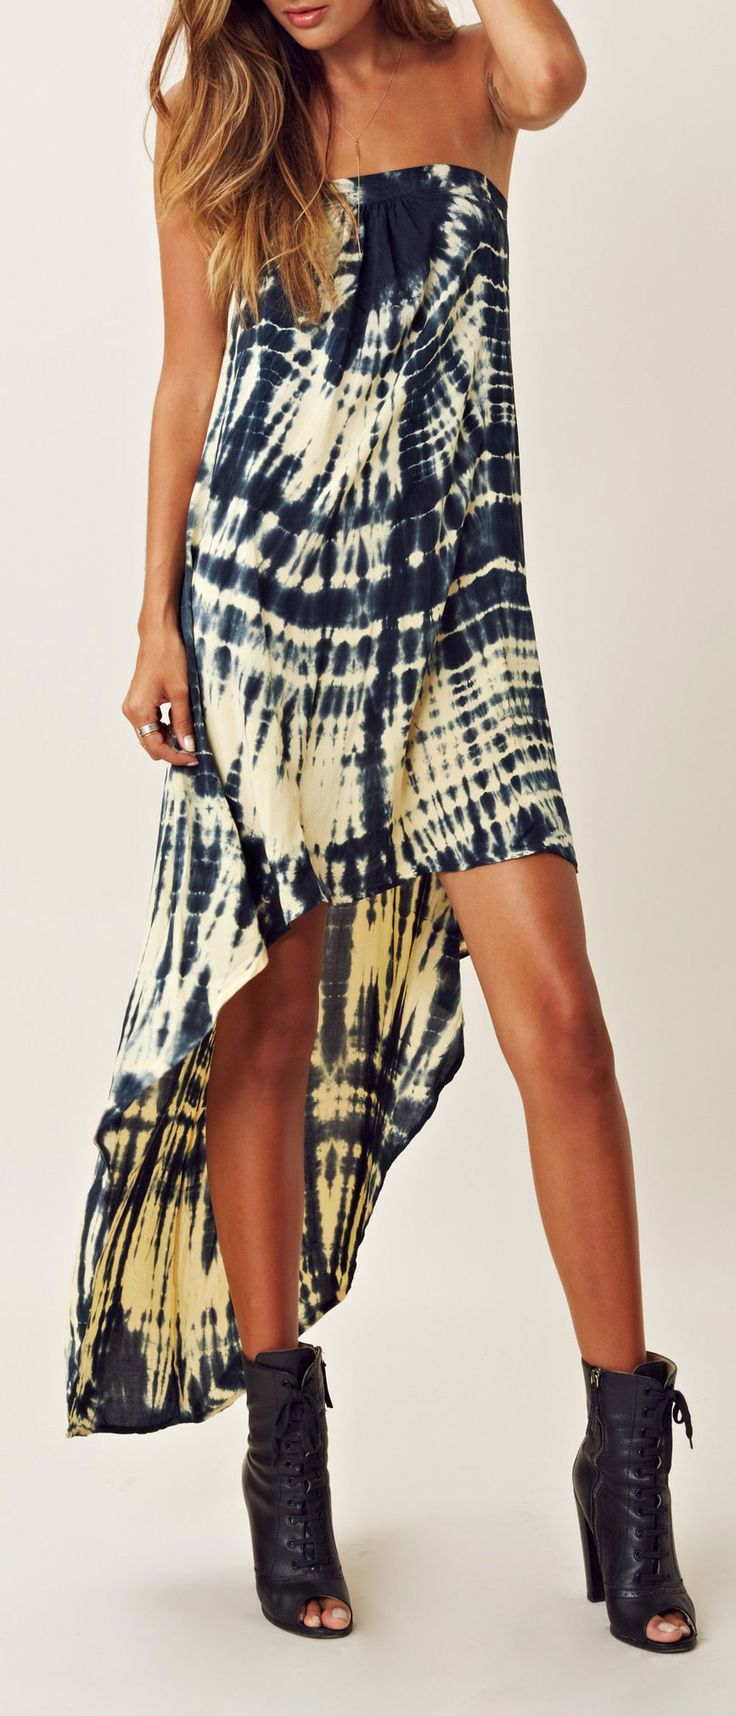 Modern hippie tie dyed multilevel maxi dress with short boho chic boots. For the BEST Bohemian fashion style FOLLOW http://www.pinterest.com/happygolicky/the-best-boho-chic-fashion-bohemian-jewelry-gypsy-/ now.